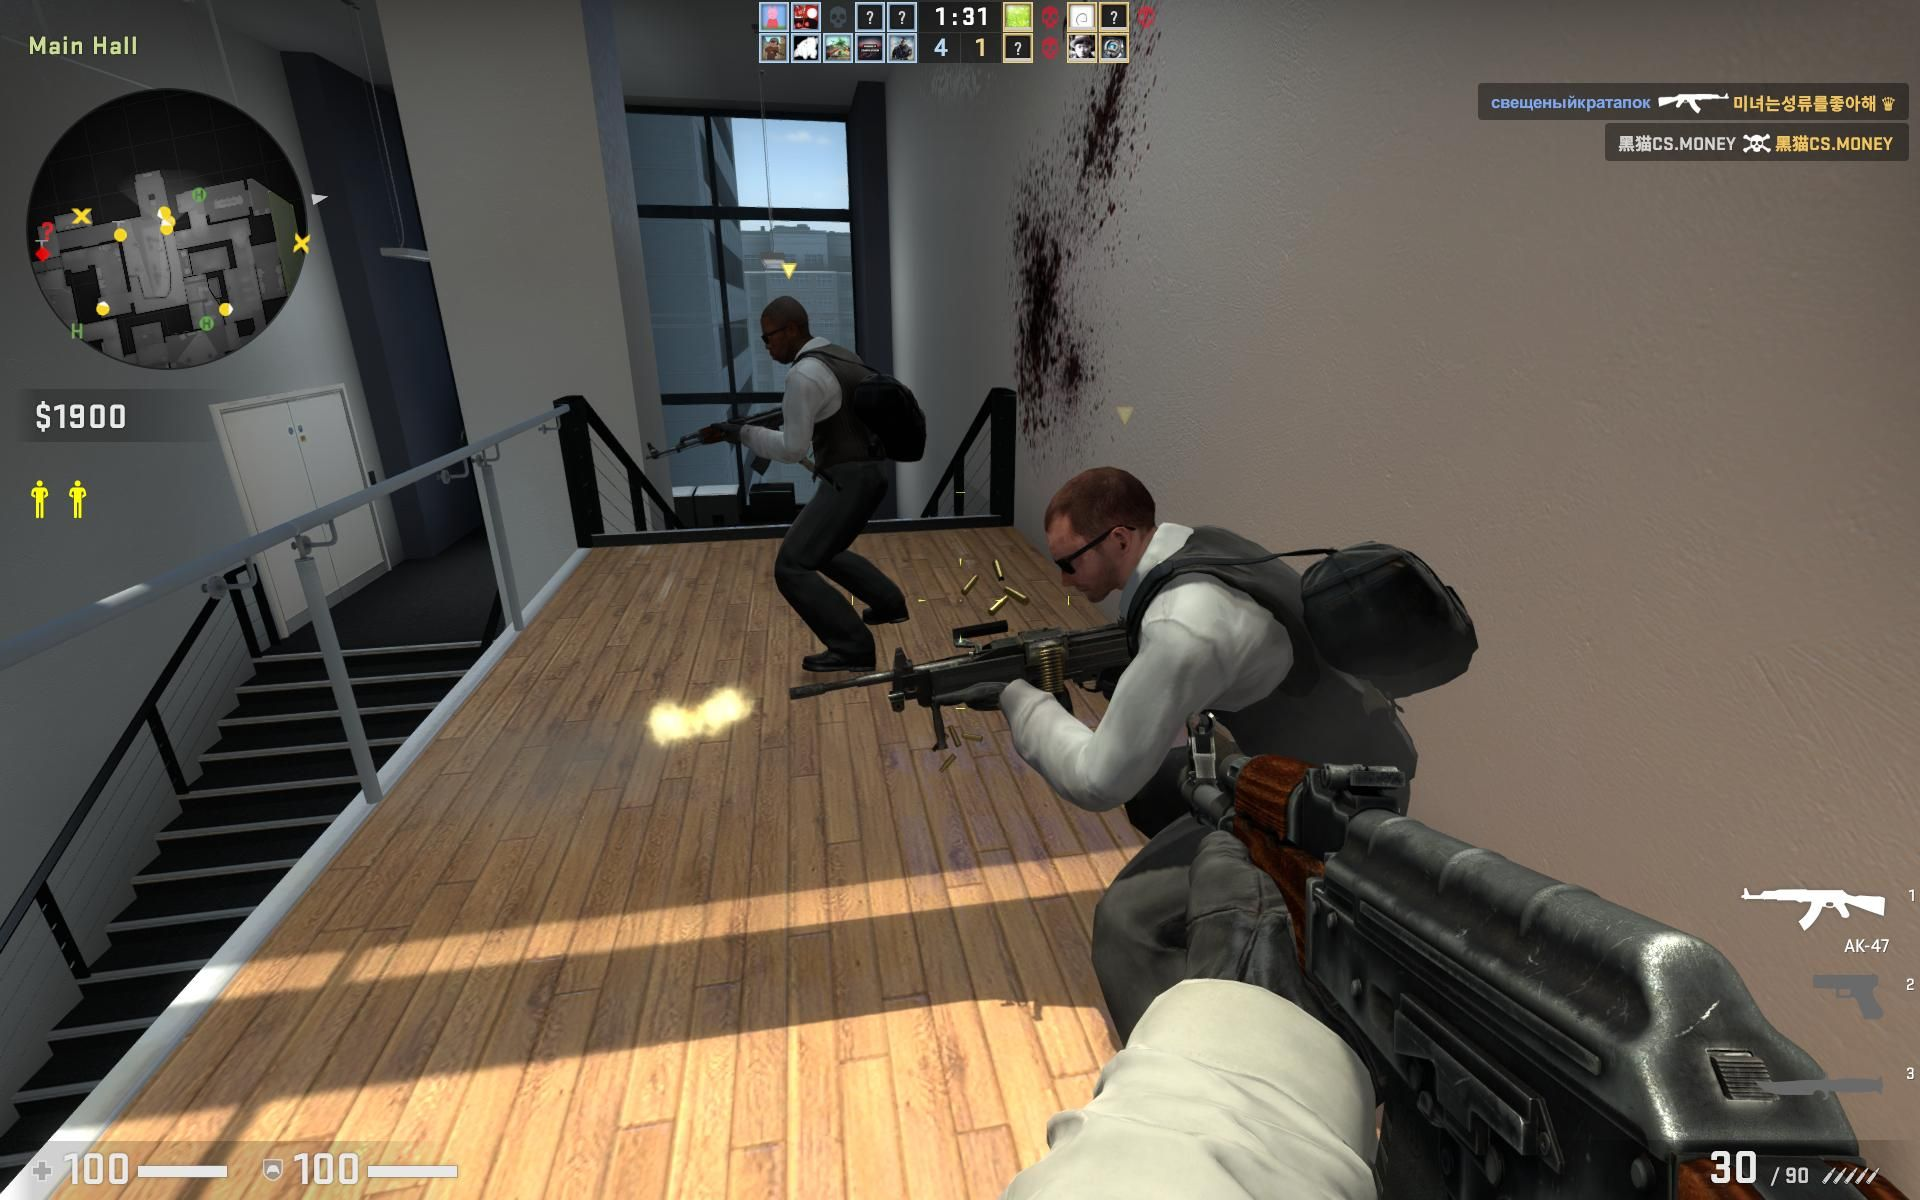 csgo auto accept matchmaking hook up bådudlejning